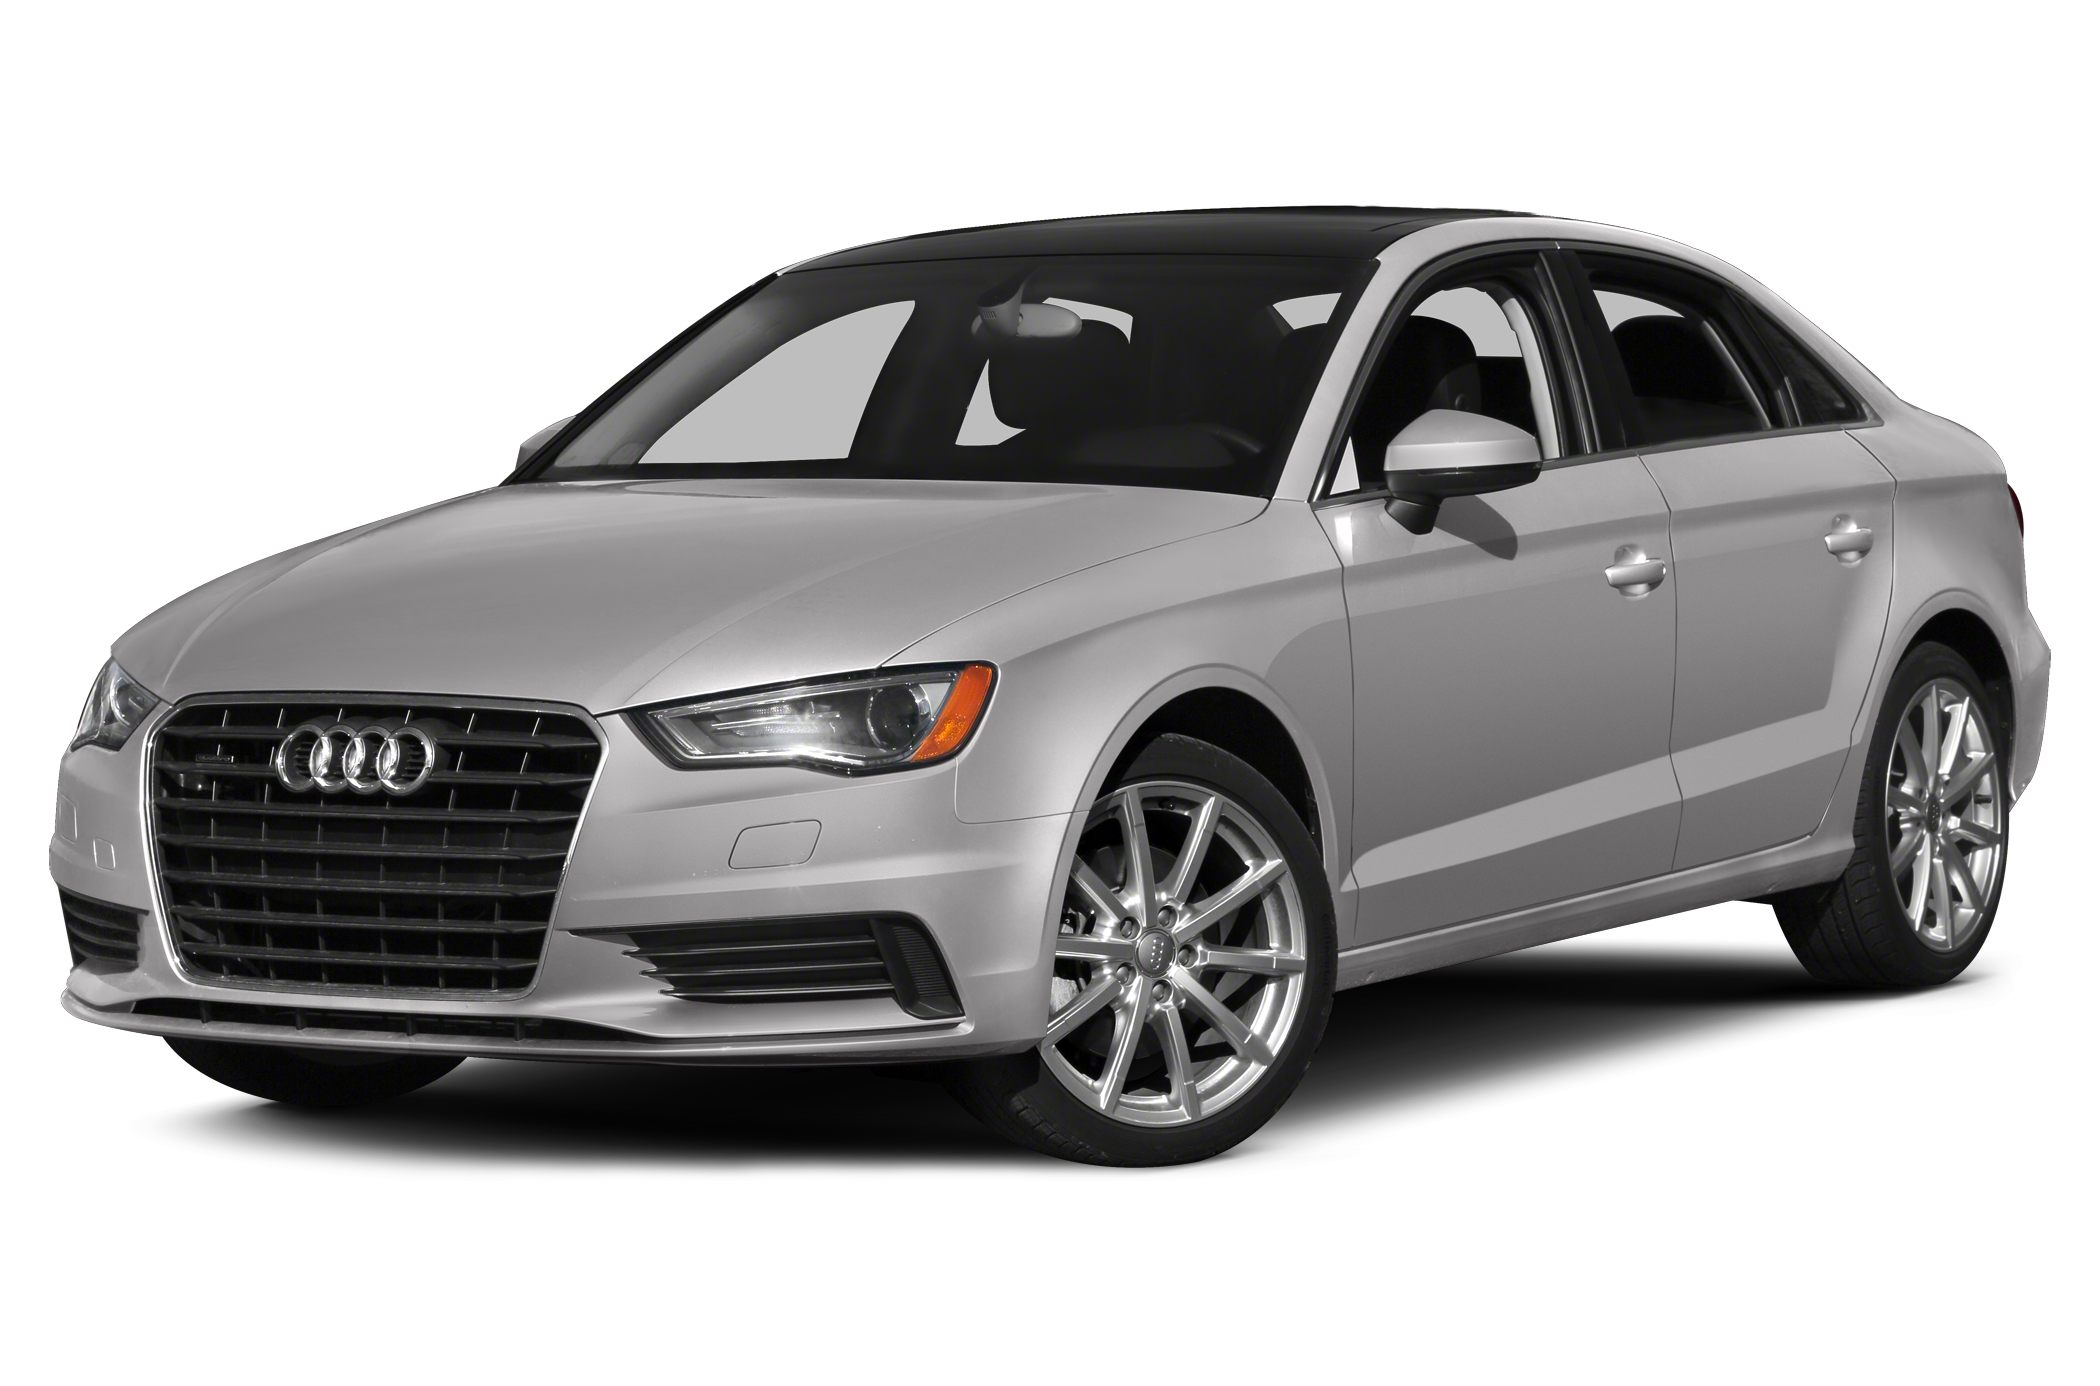 2015 Audi A3 2.0T Premium Sedan for sale in Ann Arbor for $42,375 with 10 miles.